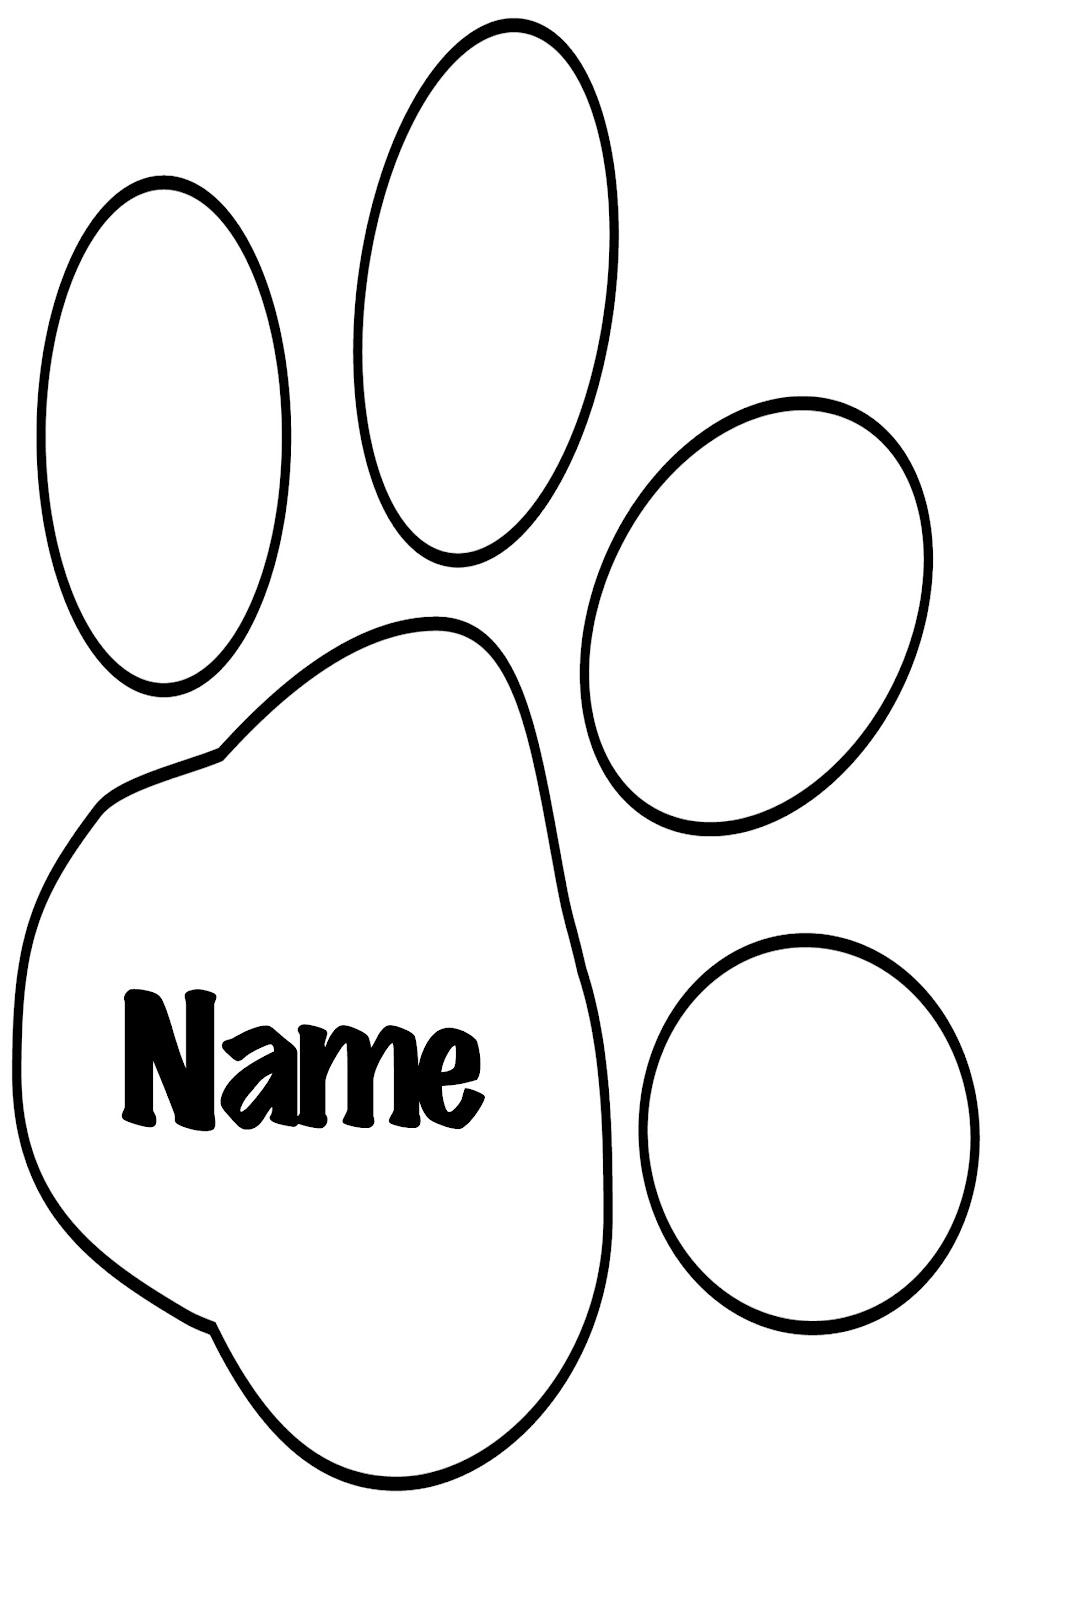 Witty image for free printable paw prints